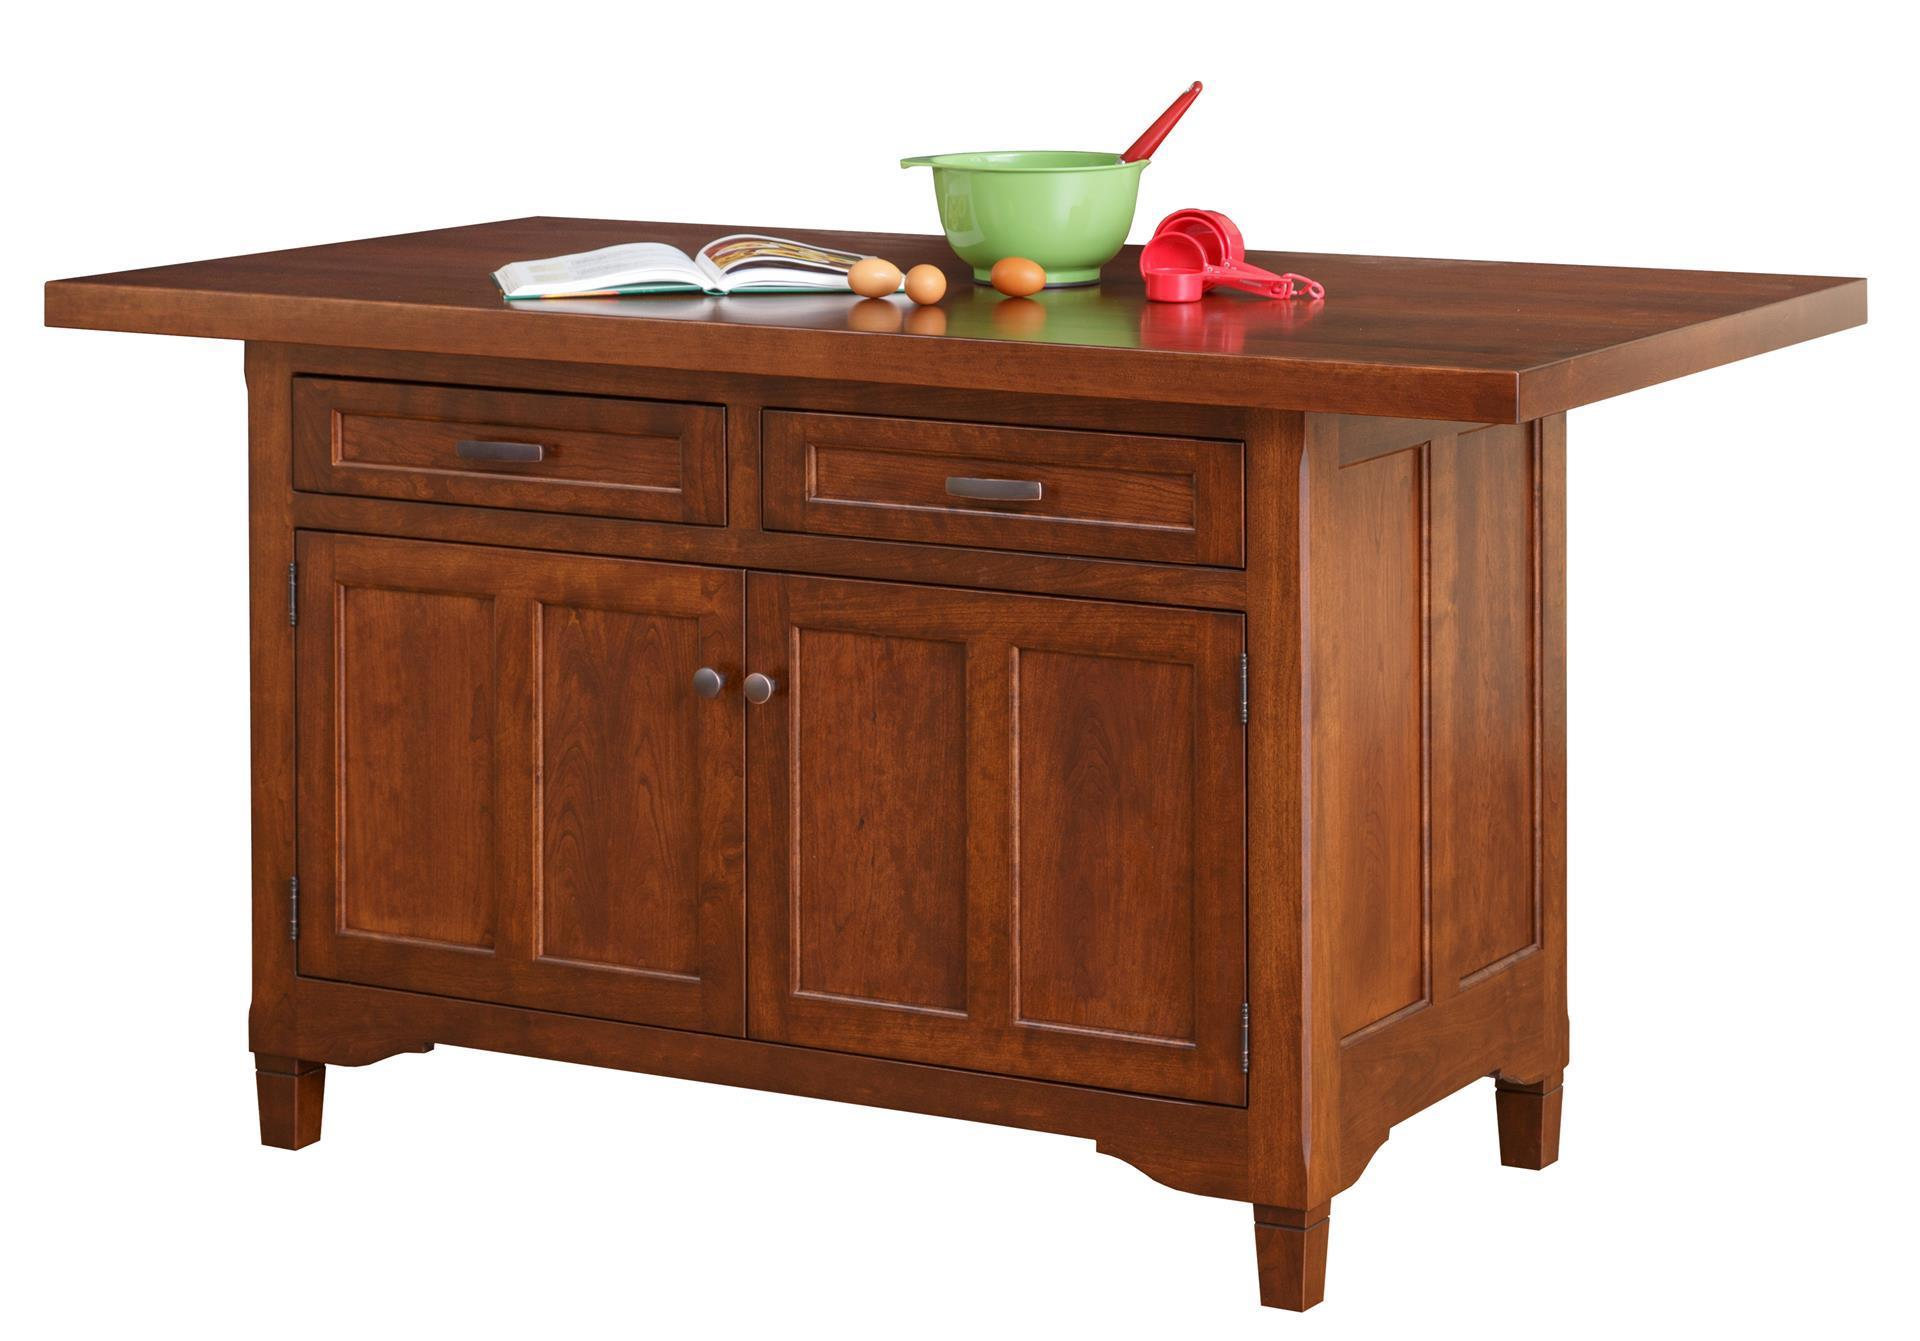 Amish Solid Wood Kitchen Island - Lexington Two Doors and Two Drawers